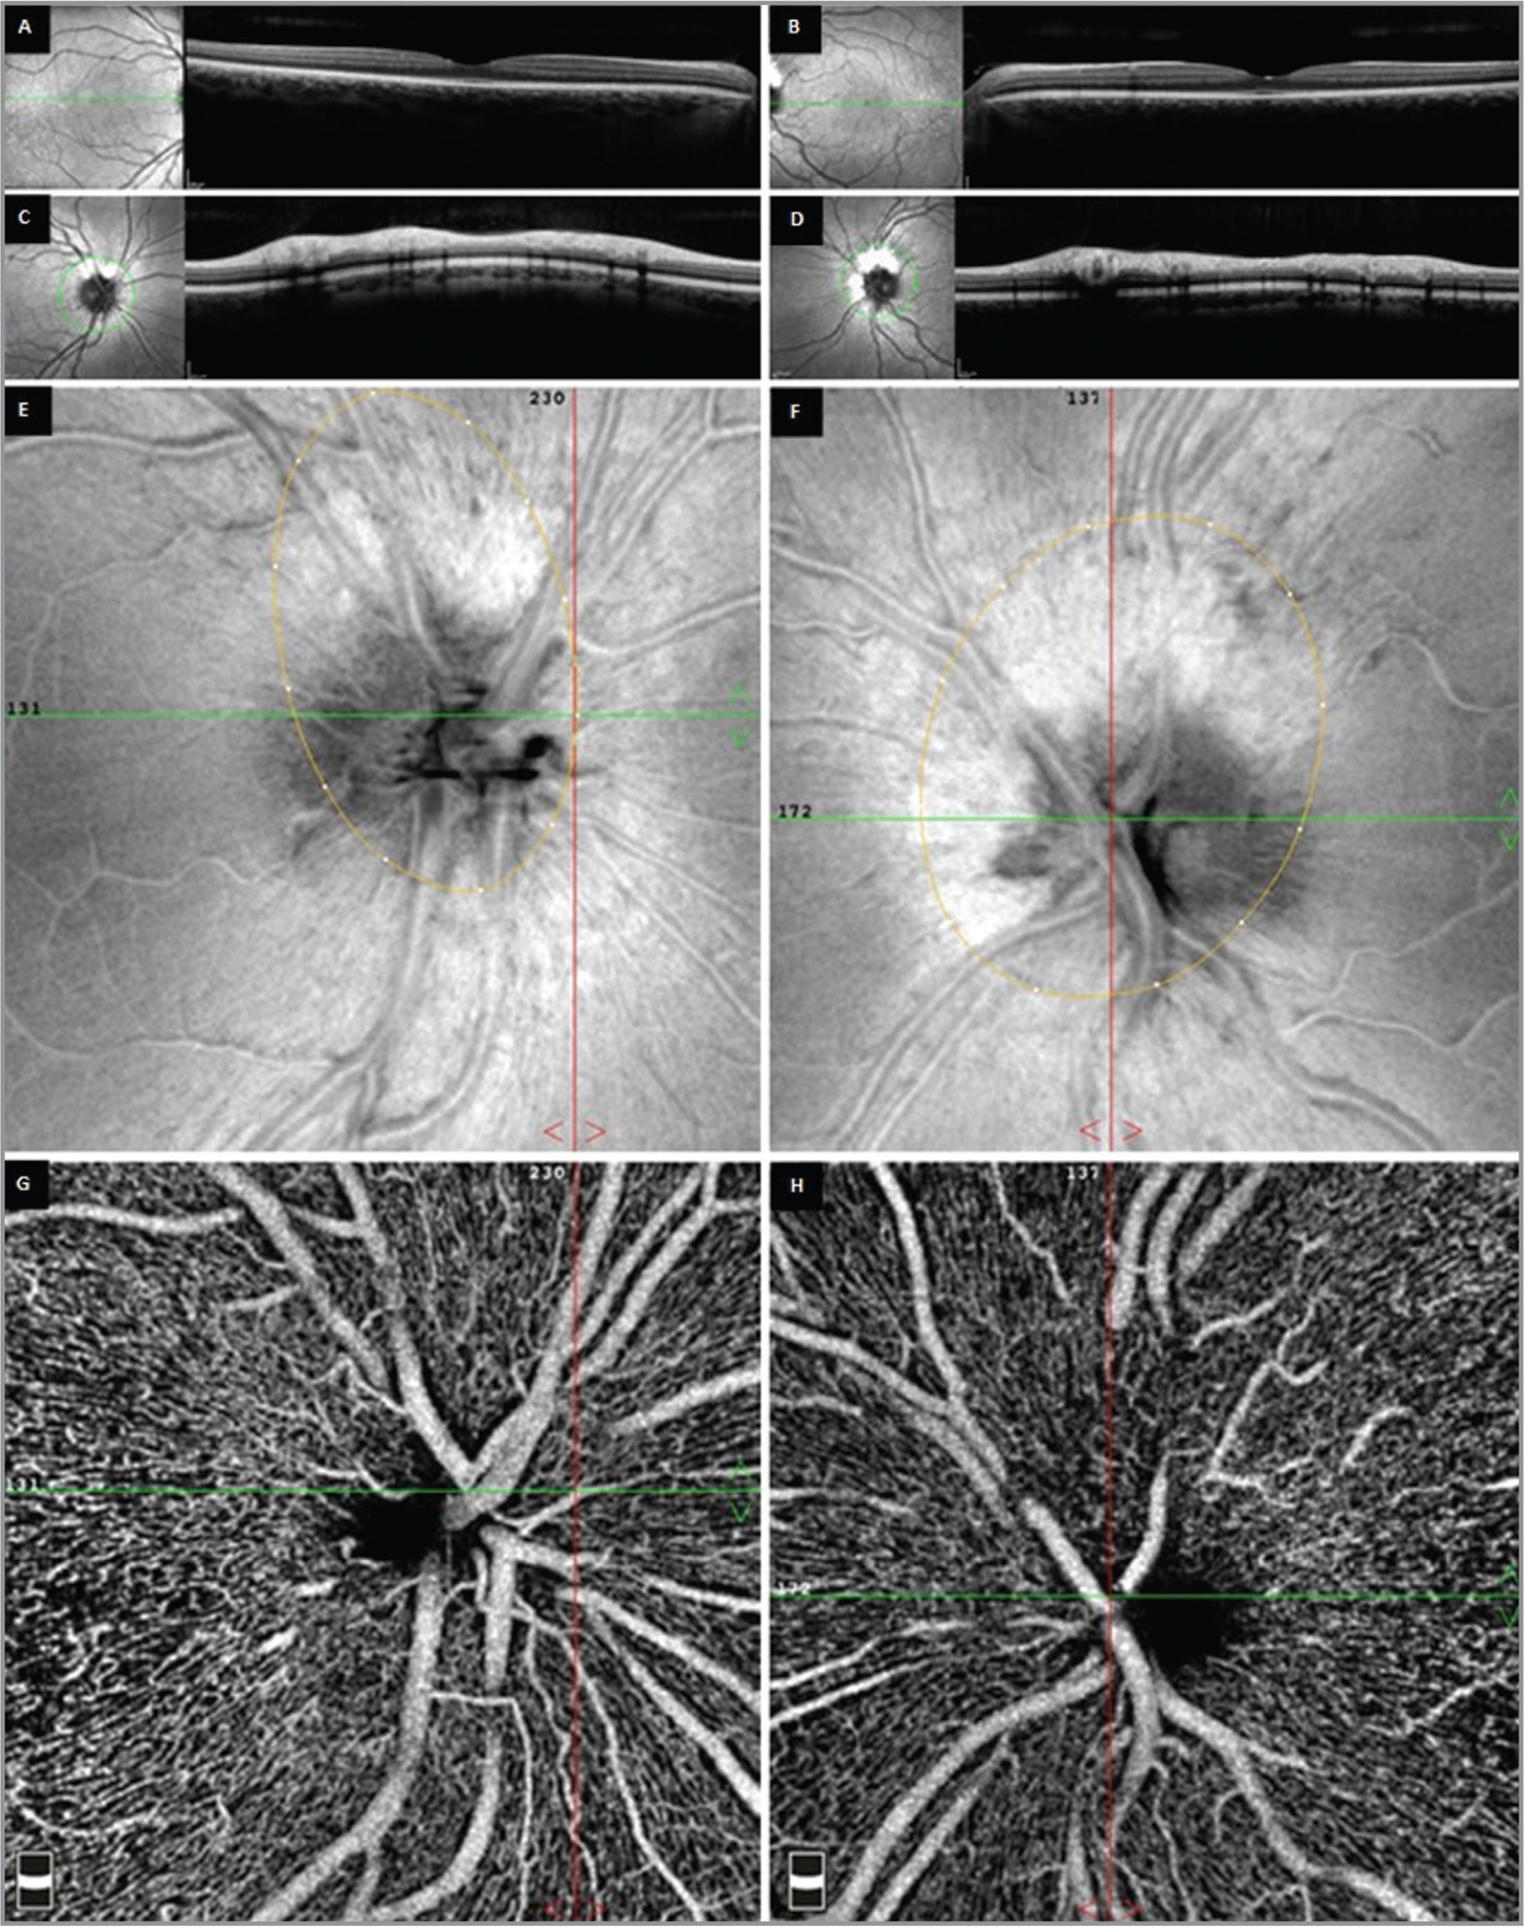 Bilateral cross-sectional spectral-domain optical coherence tomography (OCT) images of the macula are within normal limits in each eye (A, B). Cross-sectional OCT images through the nerve fiber layer around the disc illustrate a remarkably thickened nerve fiber layer corresponding to the myelination in each eye (C, D). En face structural OCT with segmentation at the level of the nerve head (upper and lower internal limiting membrane offset of 9 μm and 150 μm, respectively) illustrate areas of hyperreflectivity co-localizing with the optic disc myelination at the superior disc margin in each eye (E, F). En face OCT angiography through the myelinated nerve fibers illustrates a normal radial peripapillary plexus in each eye without any abnormality in the density or morphology of this vascular layer (G, H).